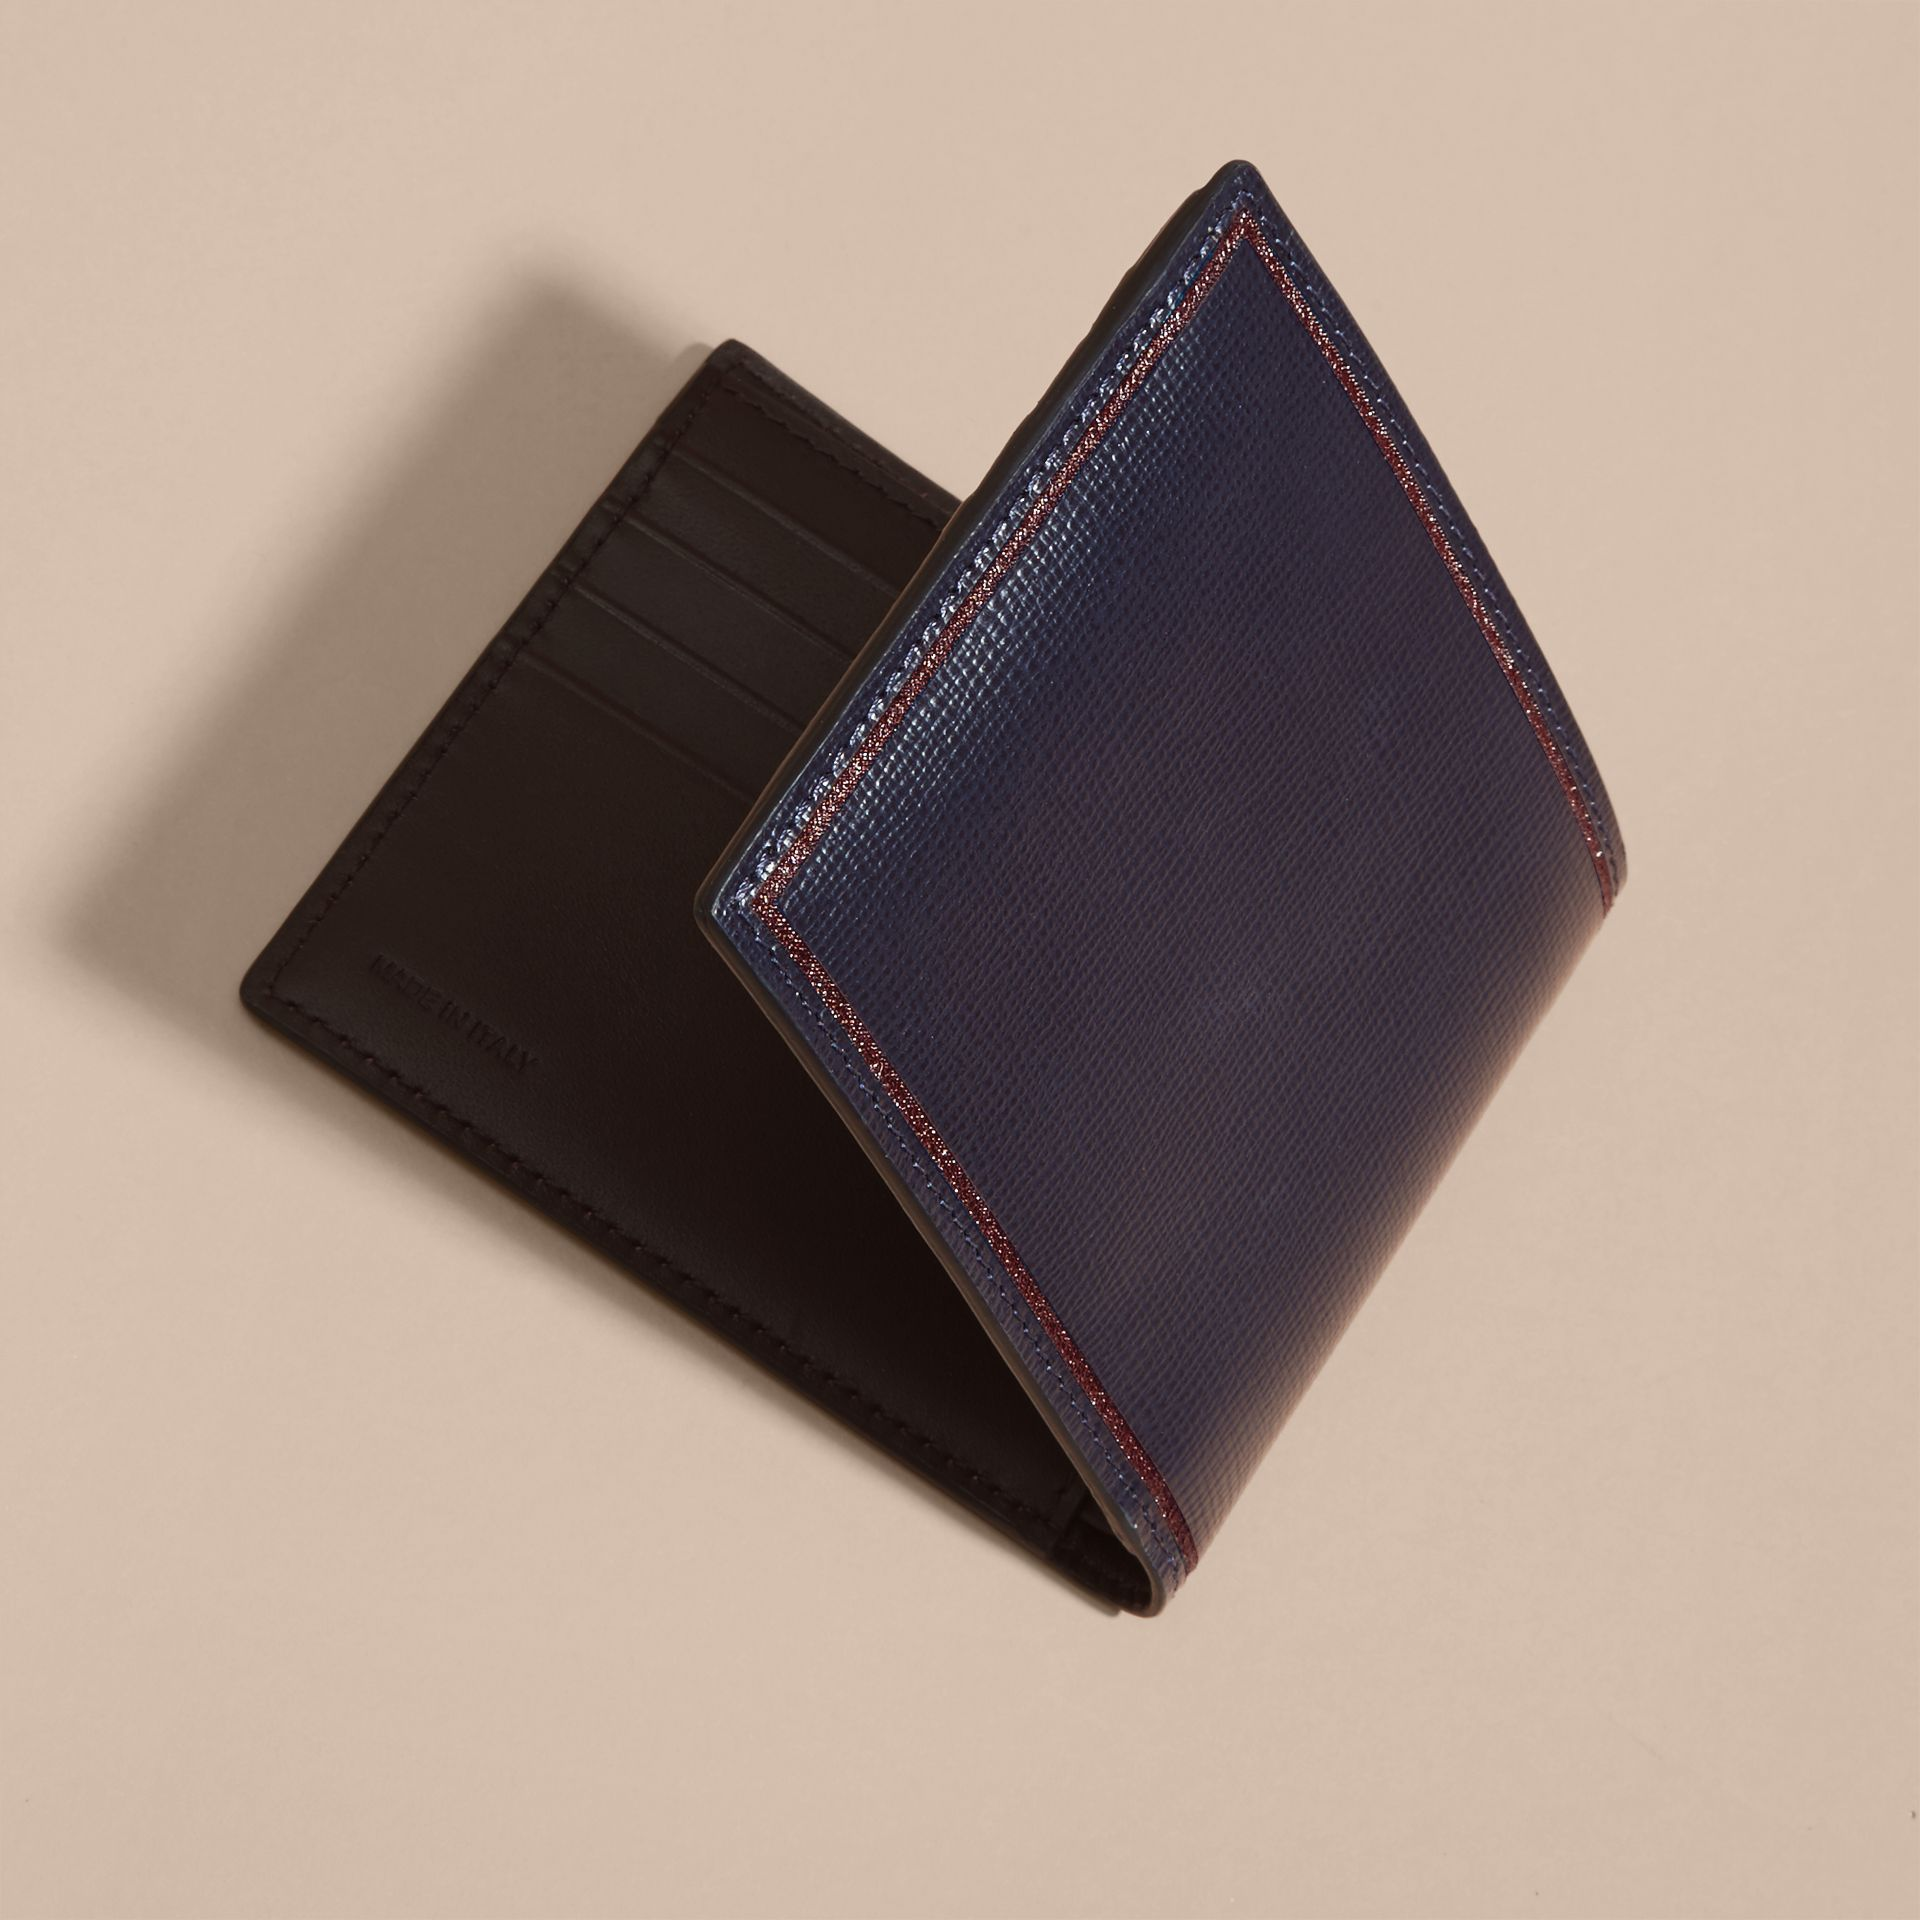 Border Detail London Leather Folding Wallet Dark Navy - gallery image 3